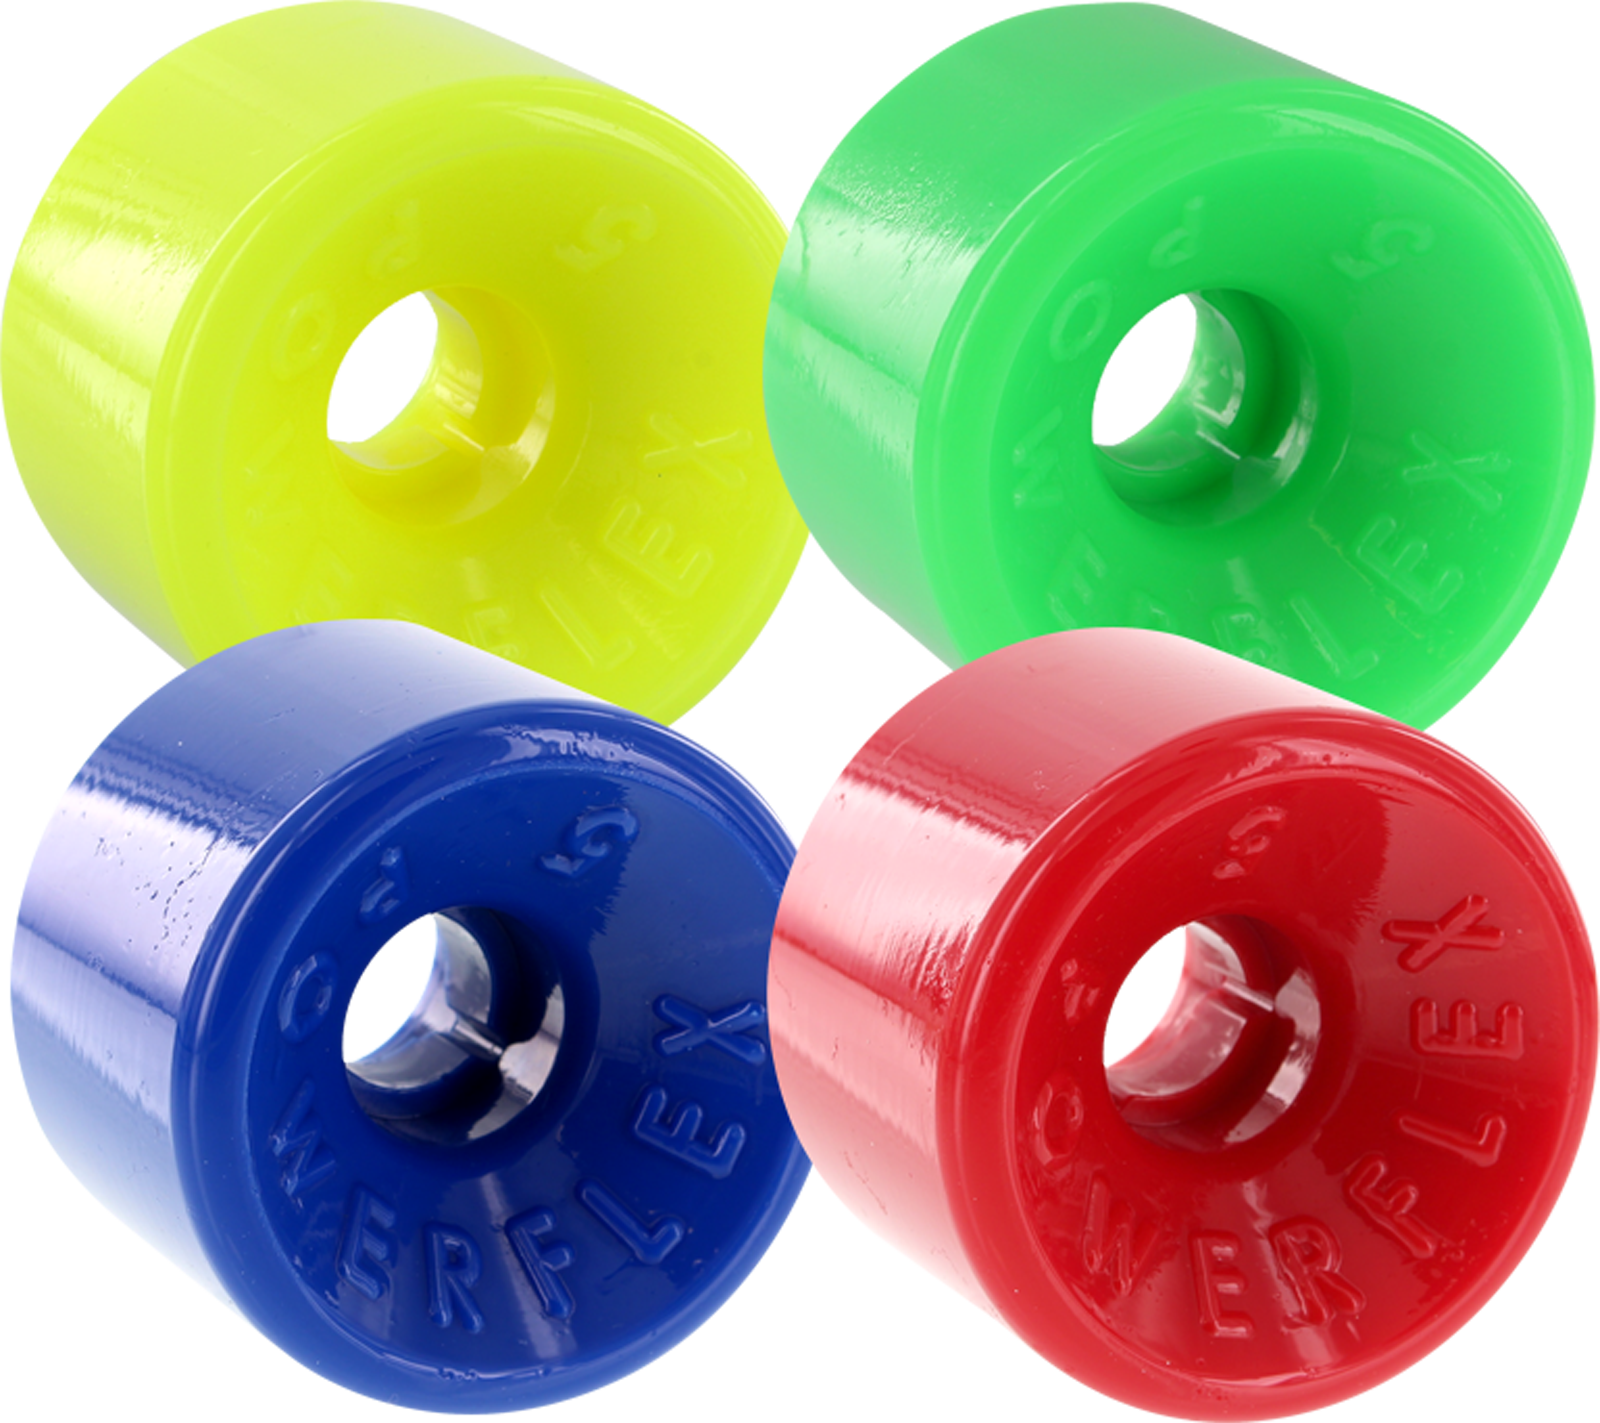 Powerflex 5 88A 63mm 4-Pack ASST 01 Yellow, Green, Blue, Red